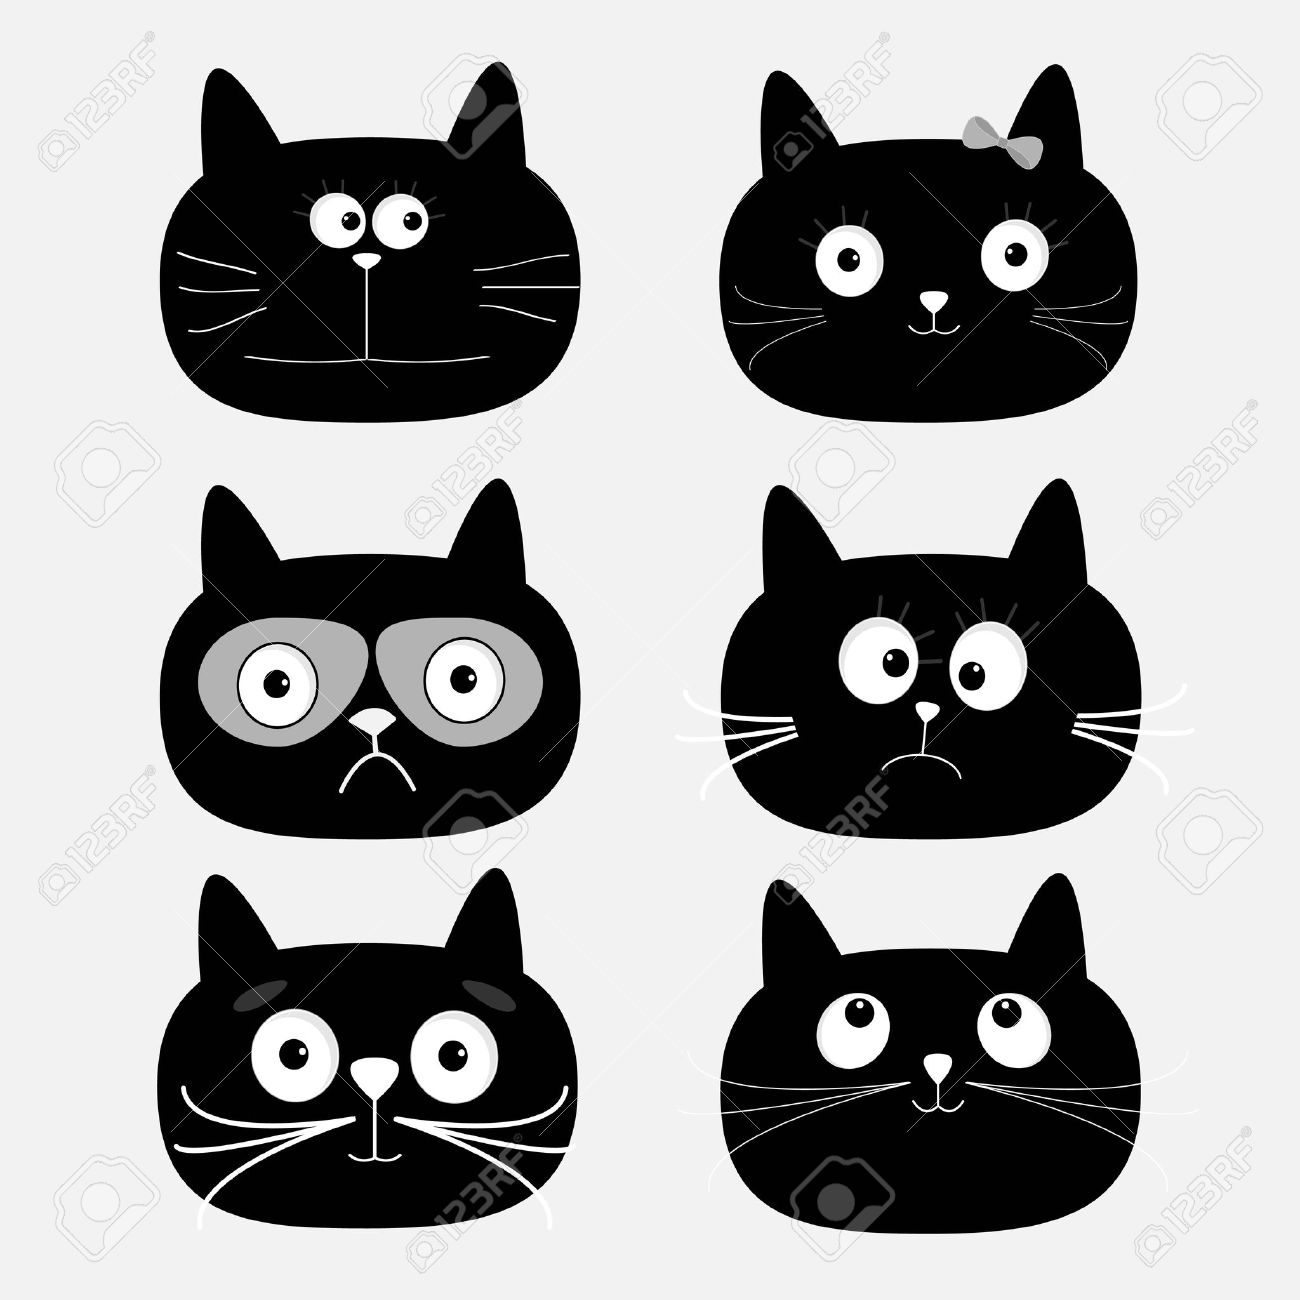 Cute black cat head set. Funny cartoon characters. White background. Isolated. Flat design. Vector illustration - 51865052